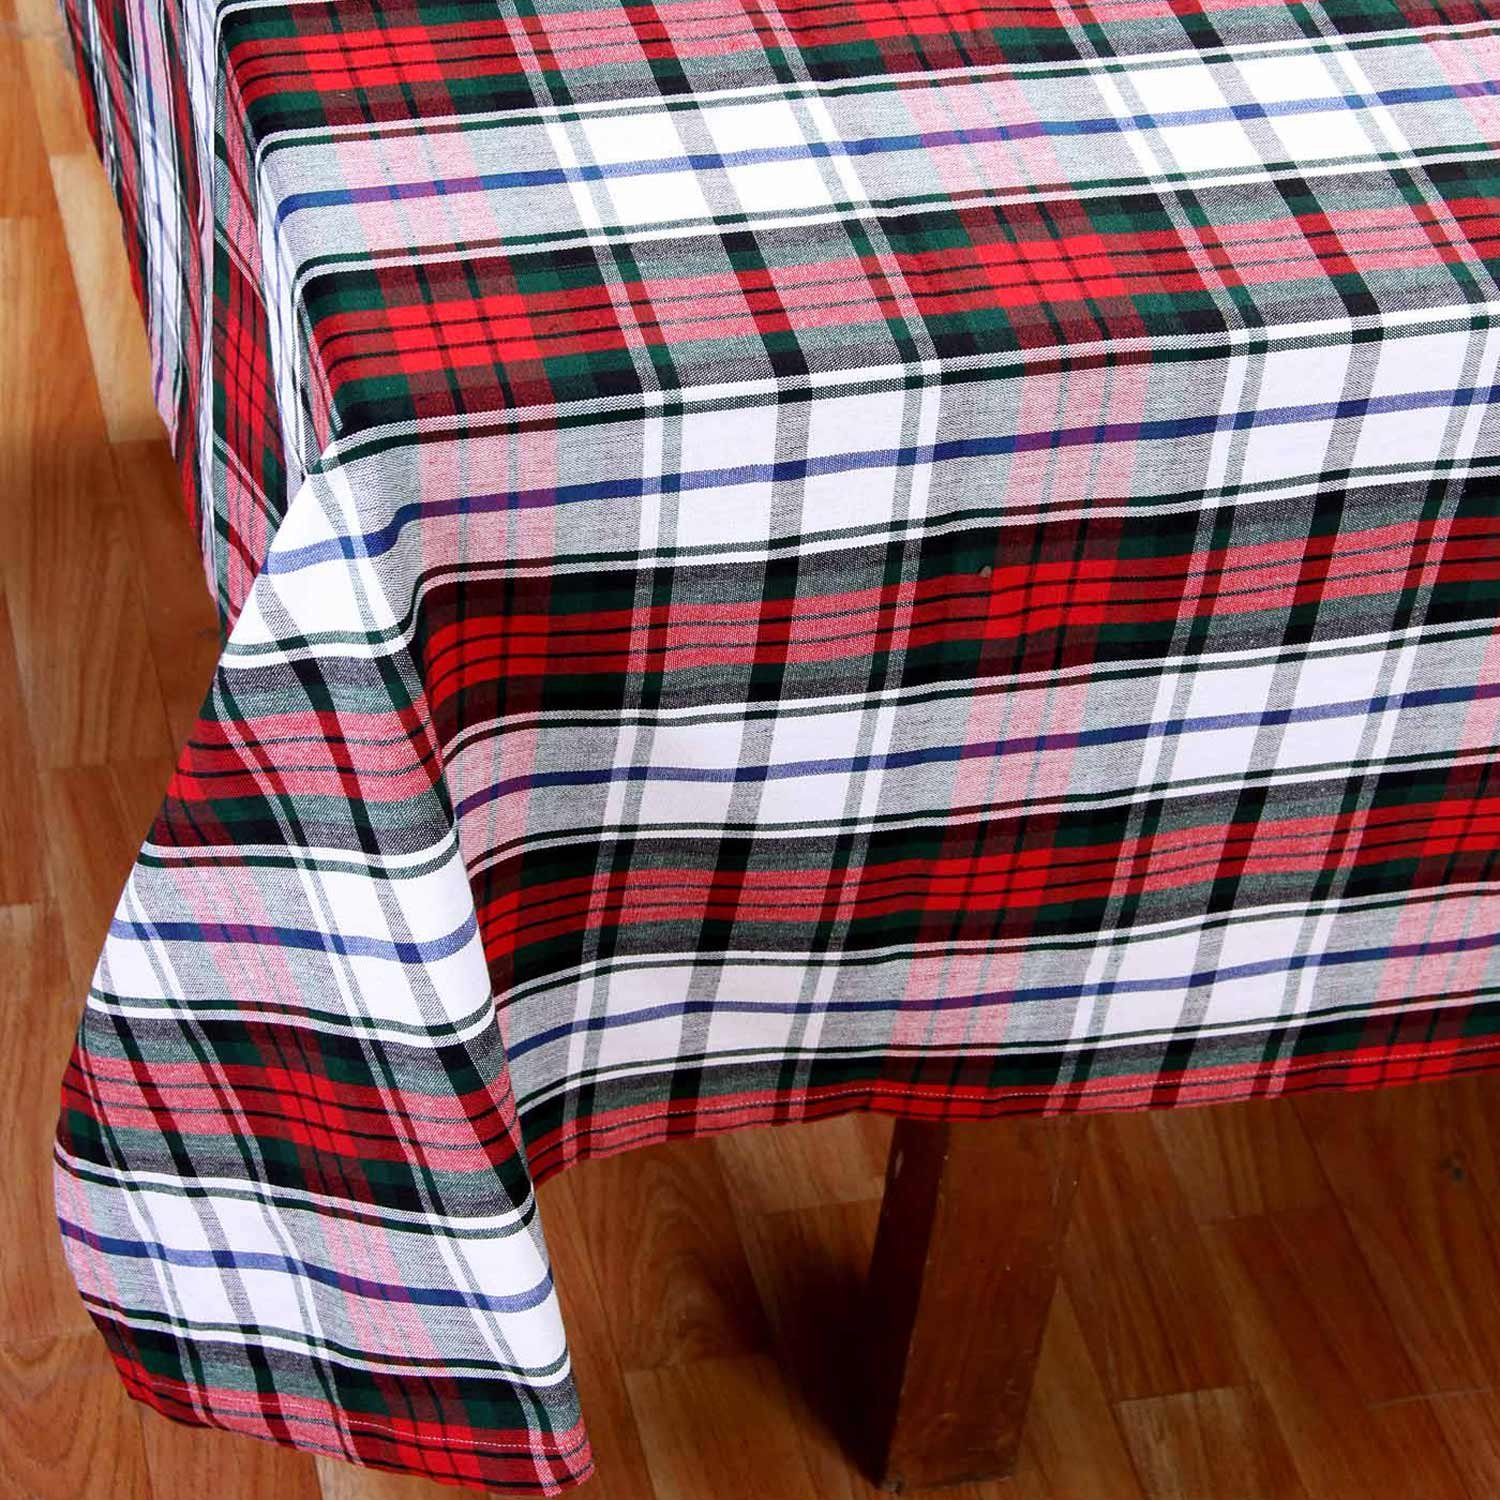 Homescapes   Christmas   Tablecloth   Macduff Tartan Check   X Mas Design    54 X 70 Inch   100% Cotton   White Green And Red Colour   Washable At Home:  ...